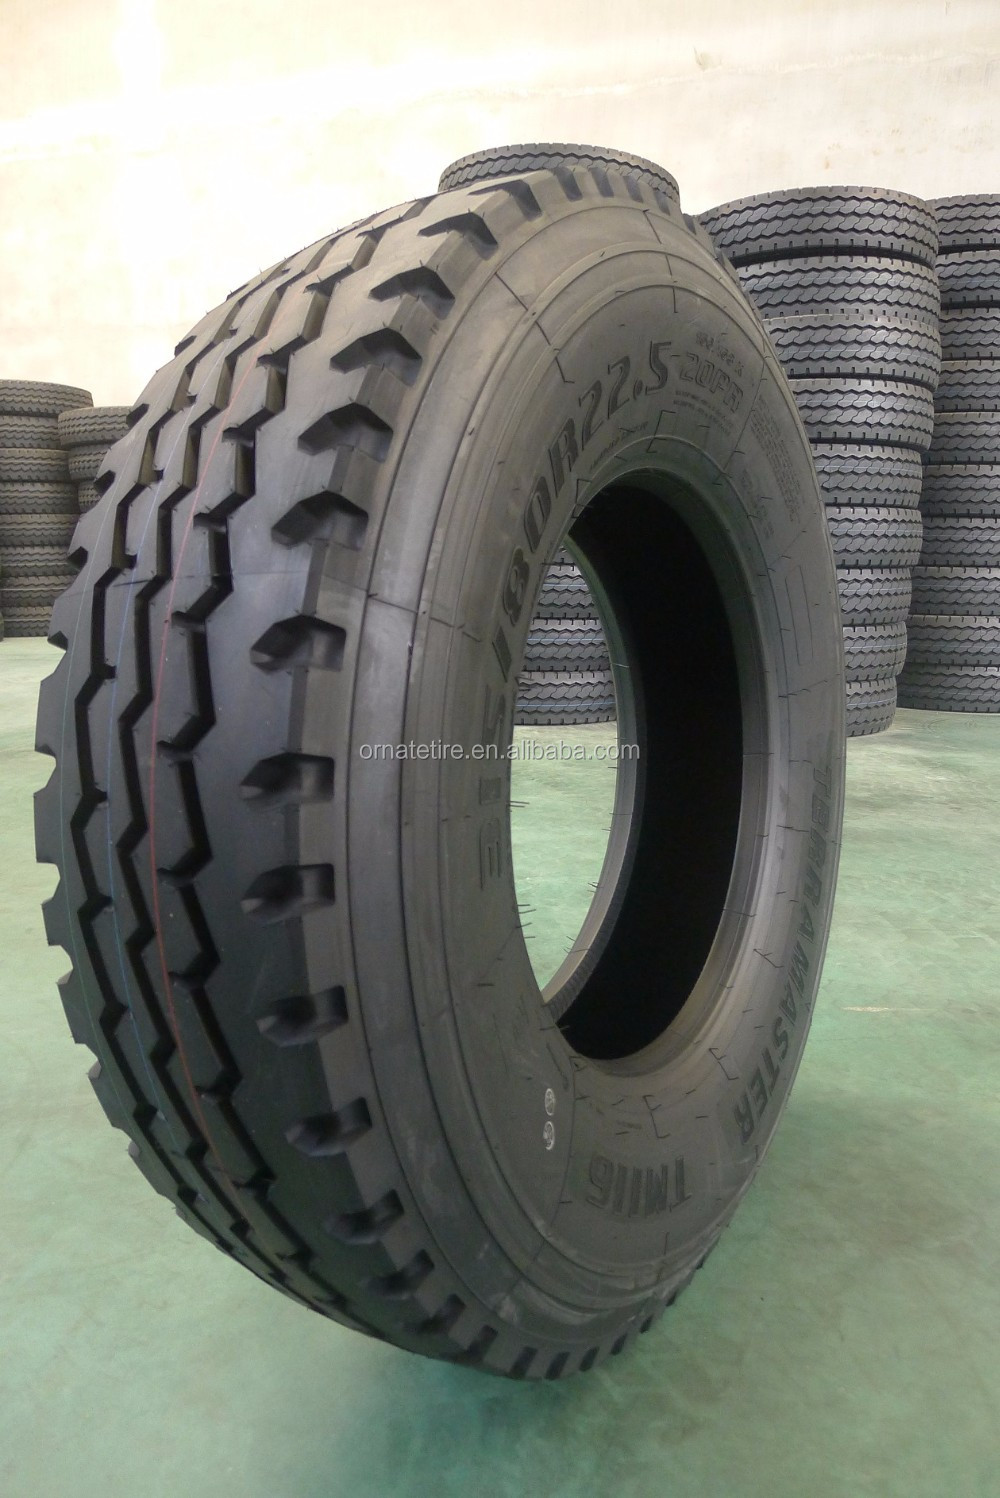 I Want To Buy Used Com >> Chinese Truck Bus Tire 1000-20 1000r20 - Buy Truck Tyre 1000-20,Radial Truck Tires,Tyres Made In ...